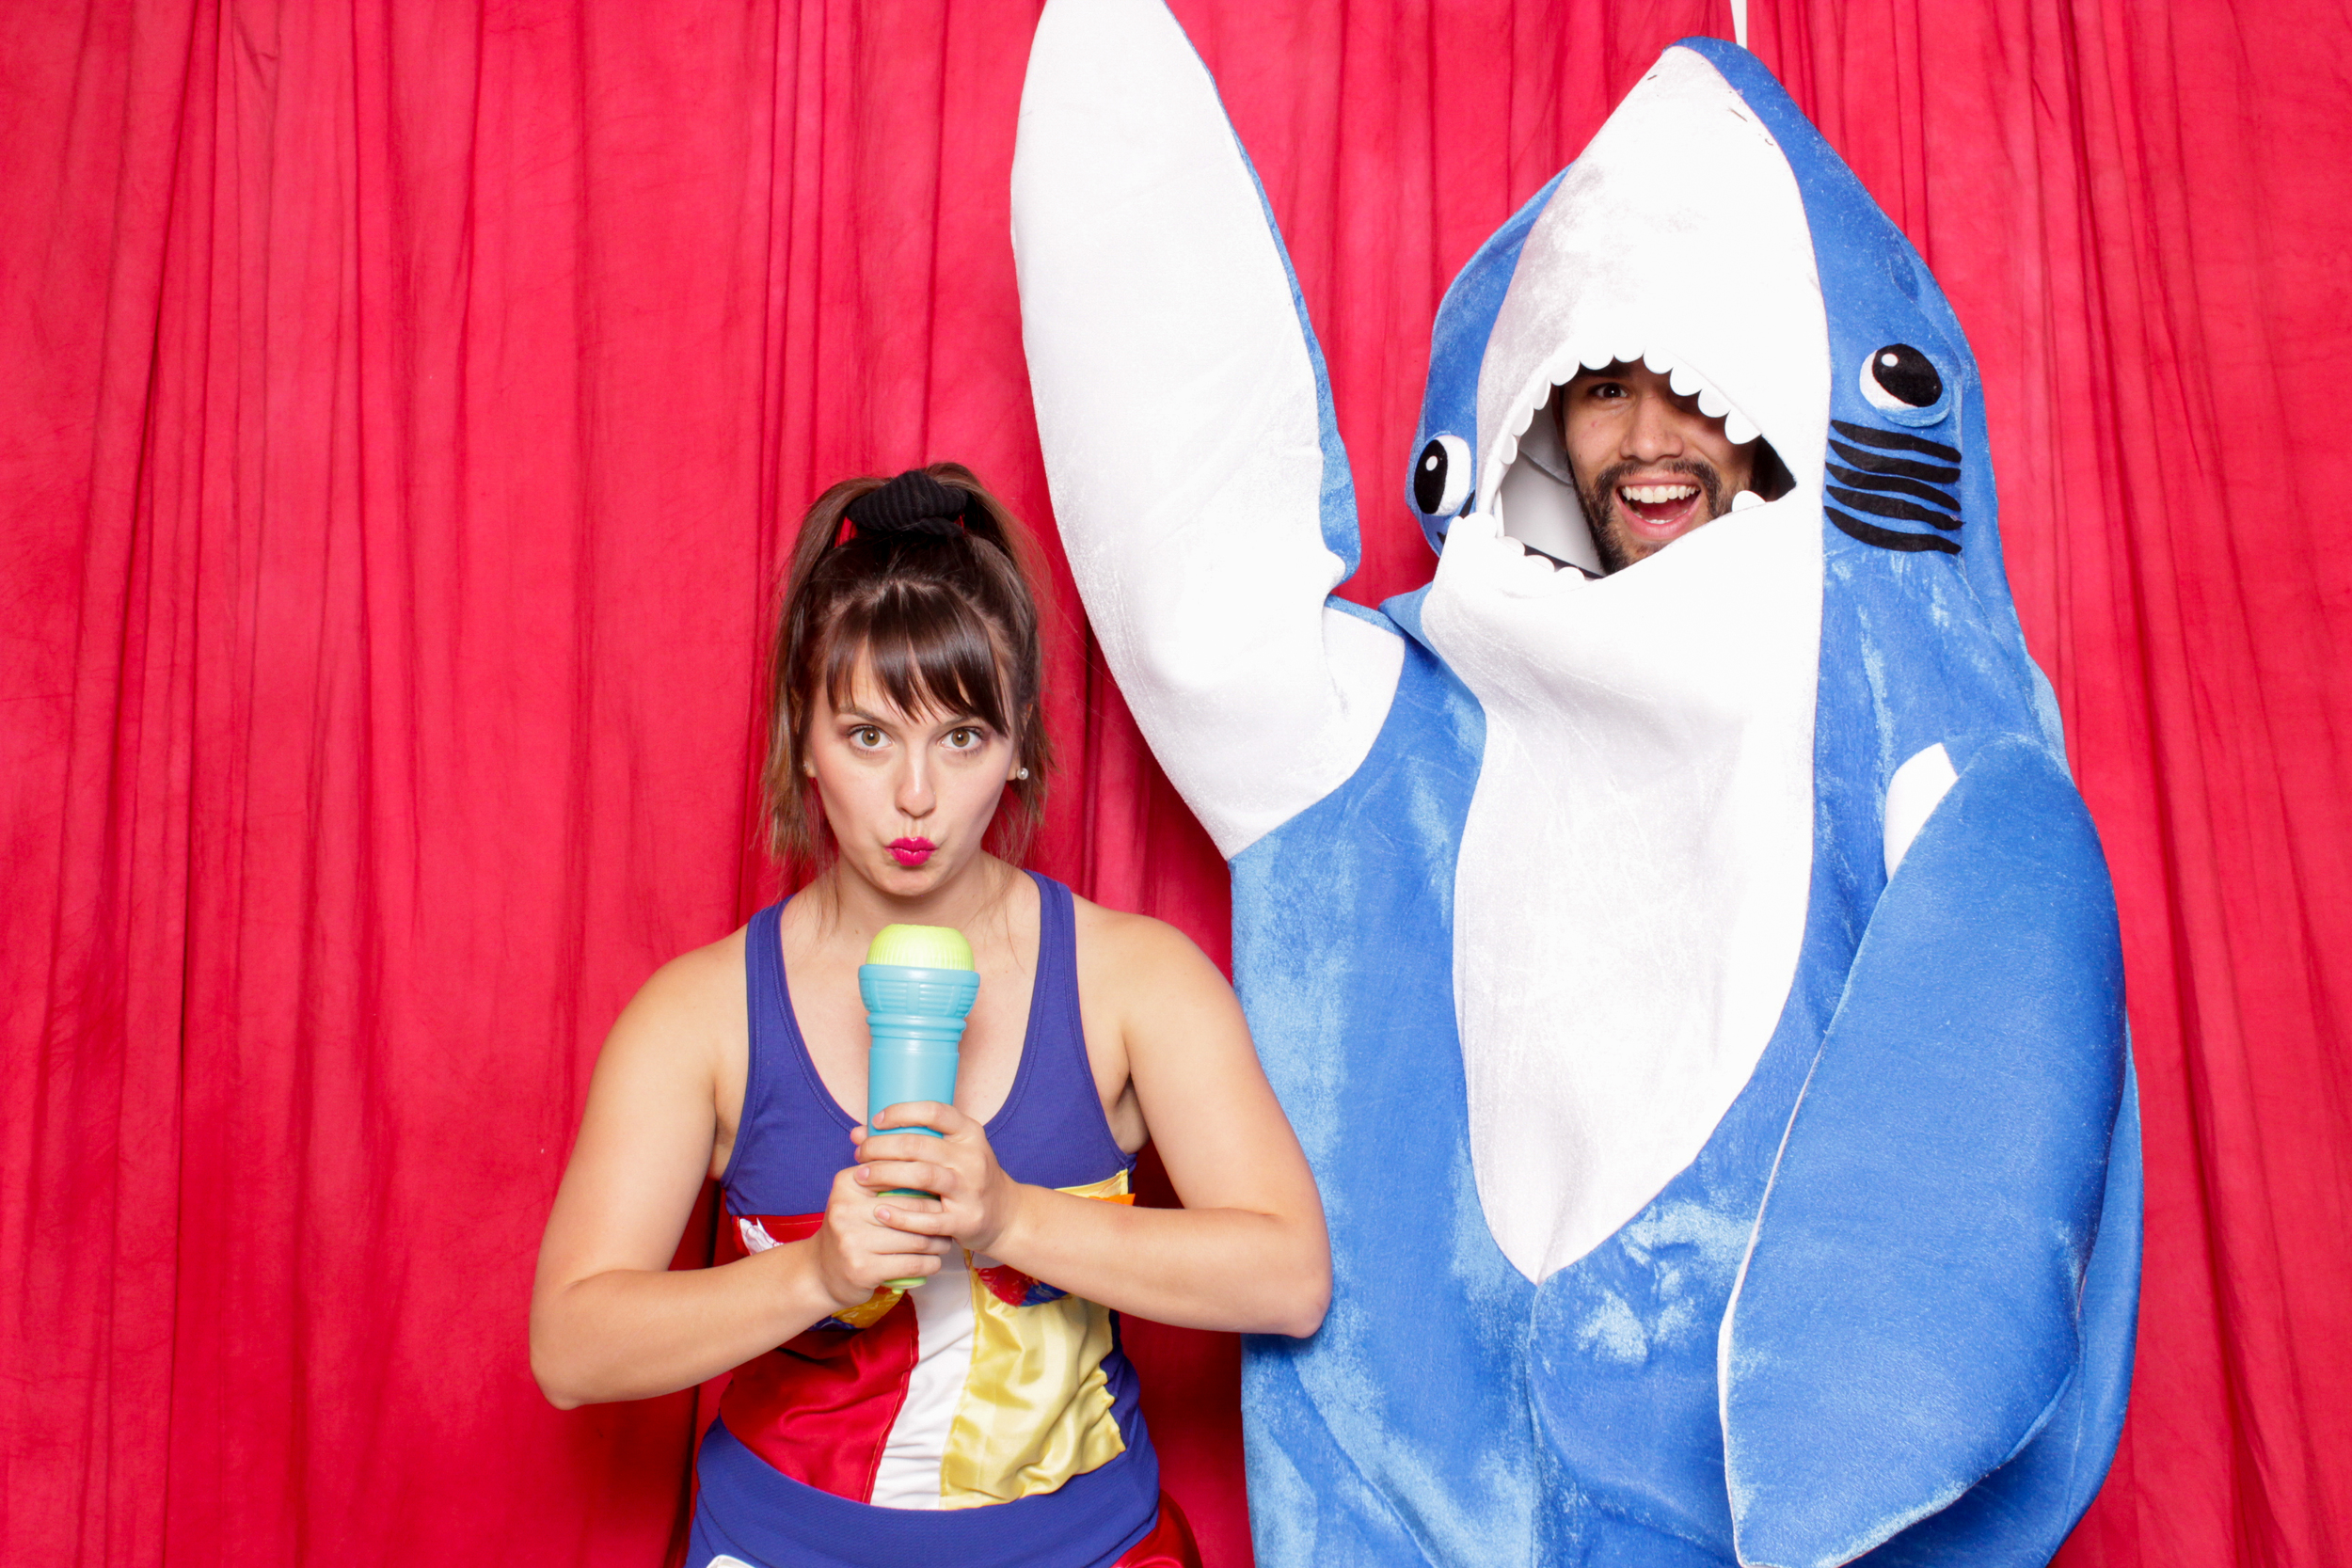 chico-photo-booth-rental-halloween-party-23.jpg